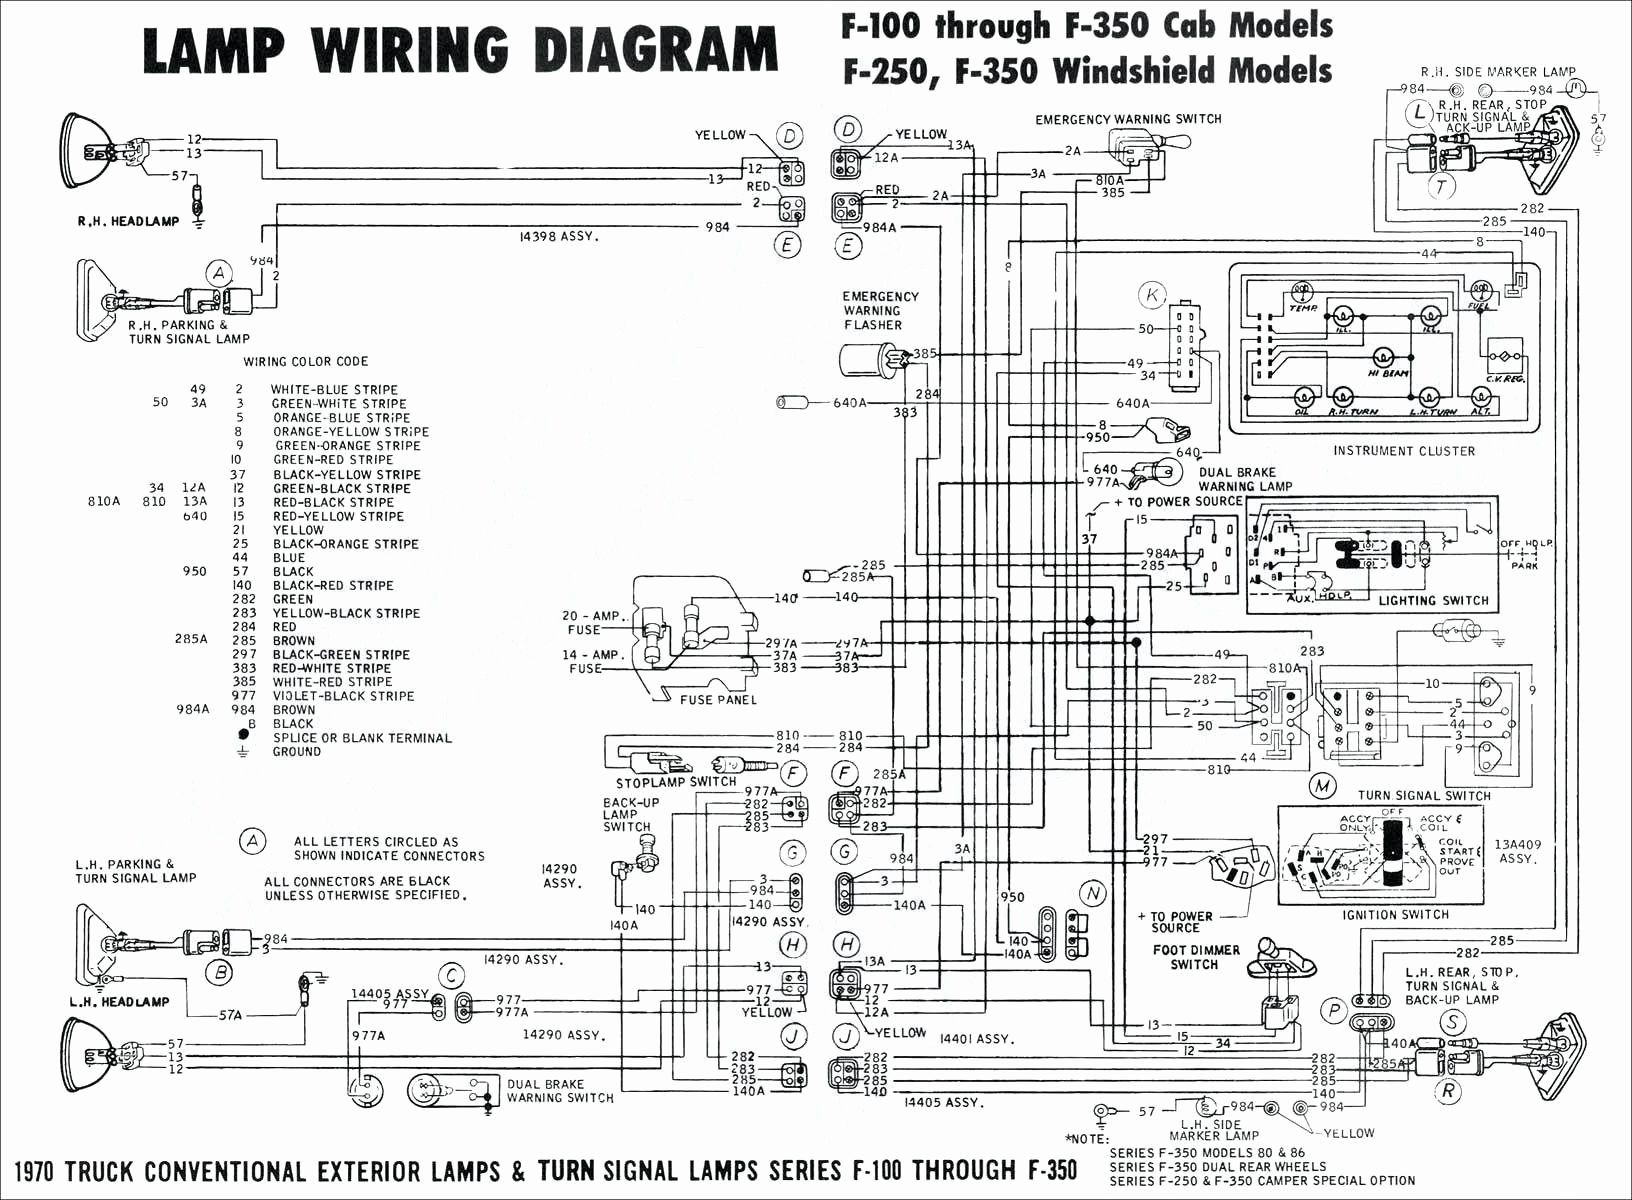 1996 Chevy S10 Headlight Wiring Diagram